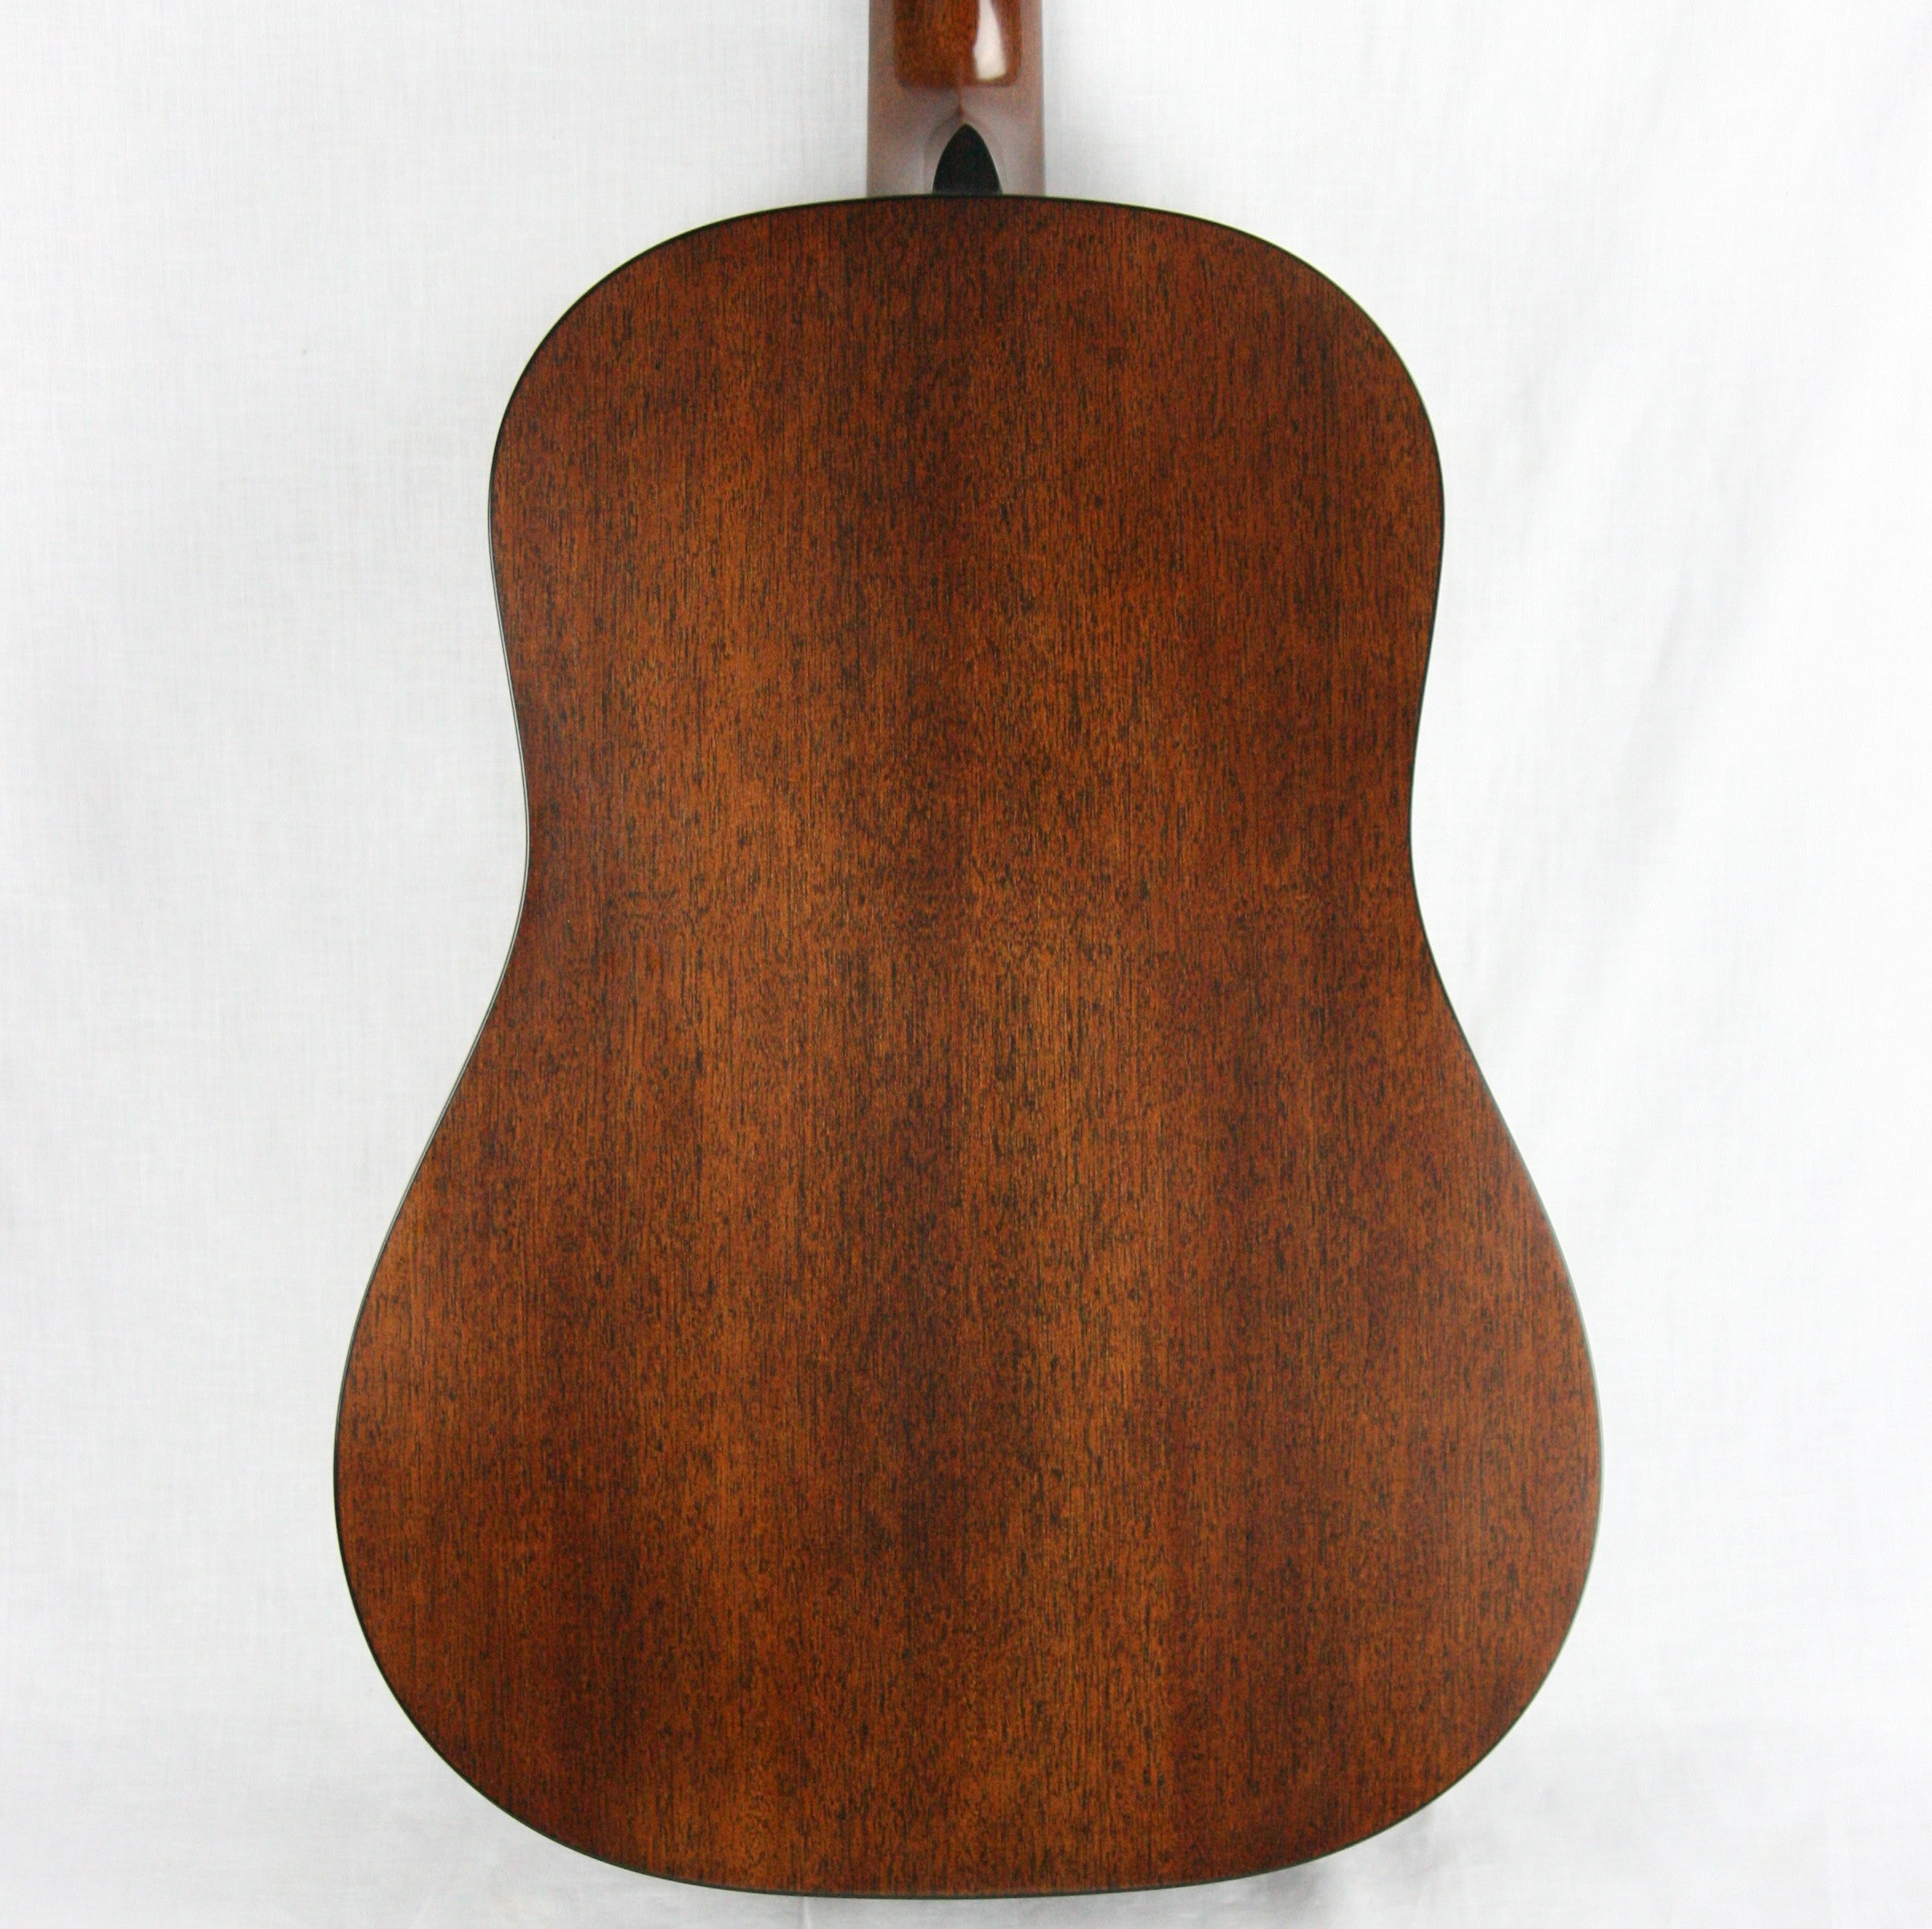 1931 Martin D-1 Authentic 12 Fret Dreadnought Acoustic Guitar! Brazilian Rosewood! First D18 Slotted